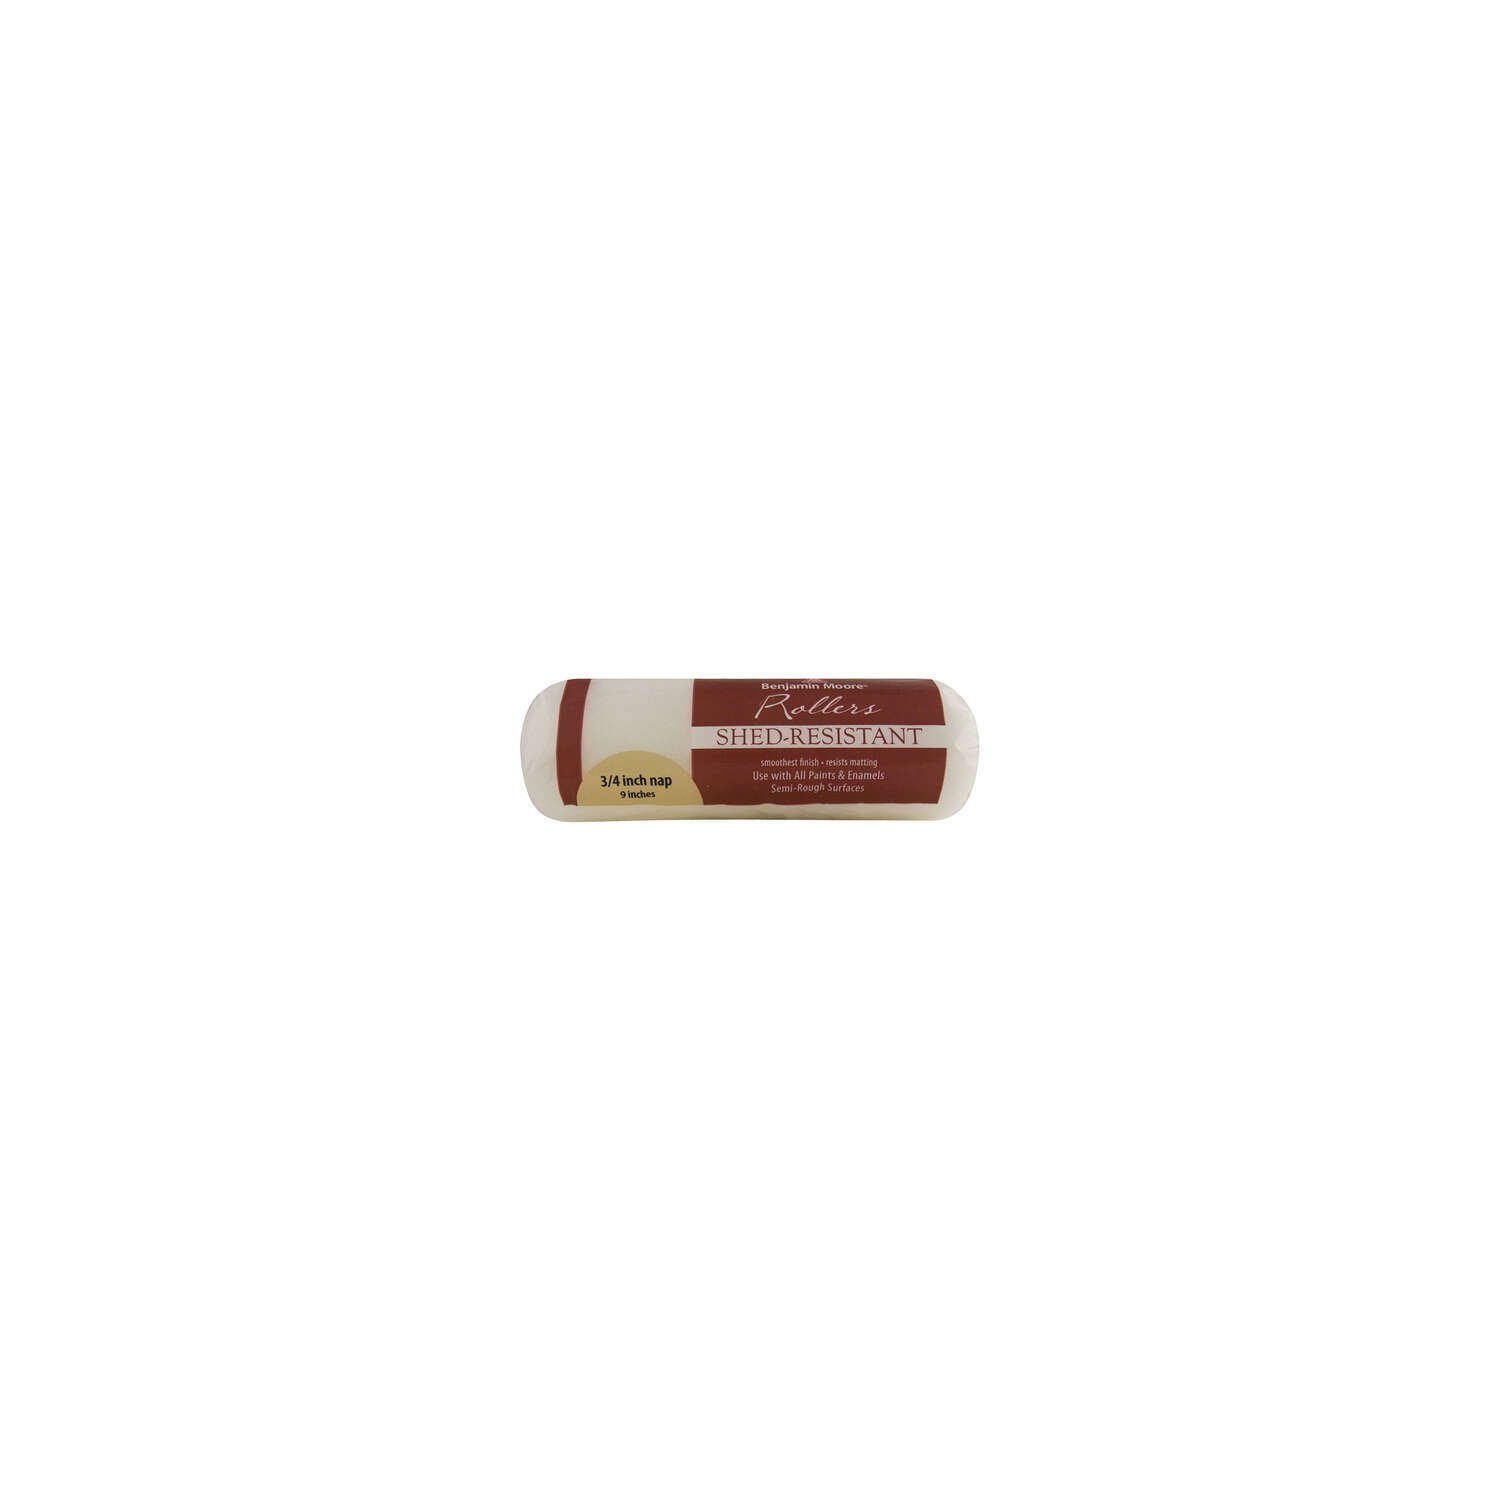 Benjamin Moore Fabric 9 in. W x 3/4 in. Paint Roller Cover 1 pk